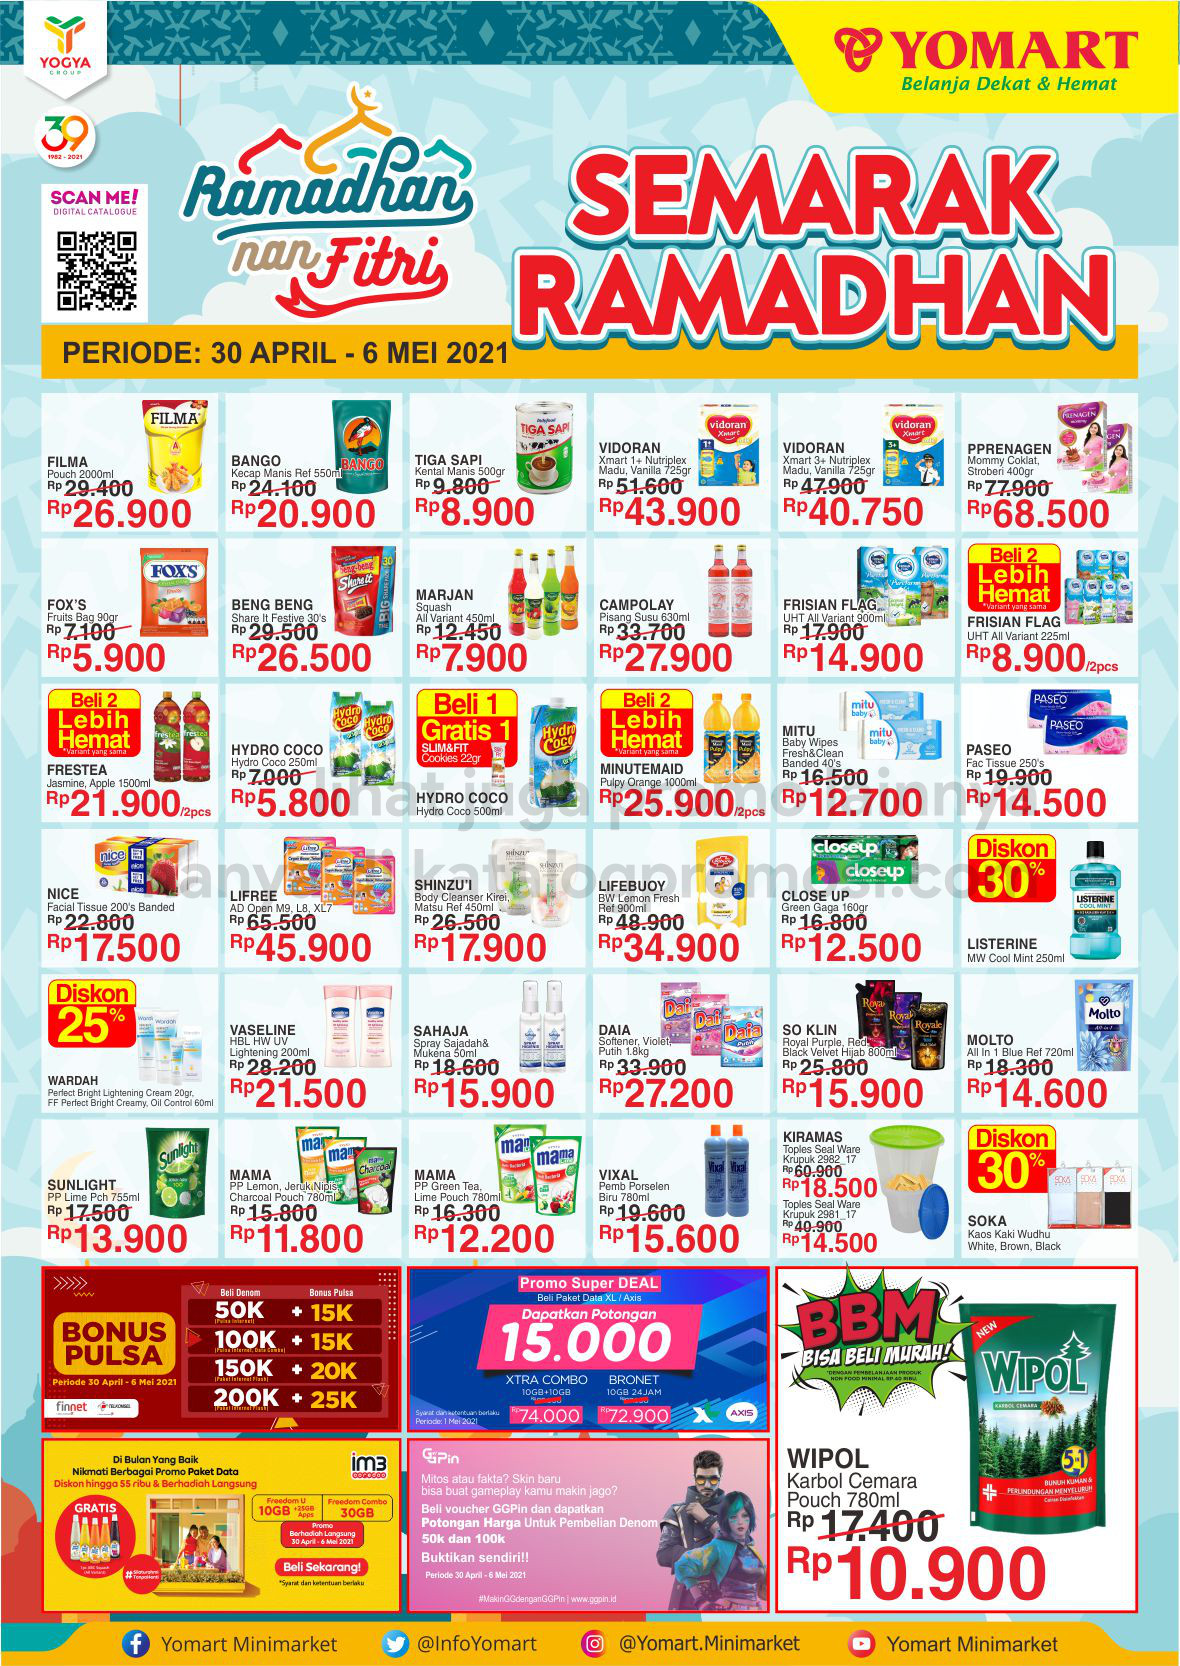 Promo Yomart Katalog Weekend Promo periode 30 April - 06 Mei 2021